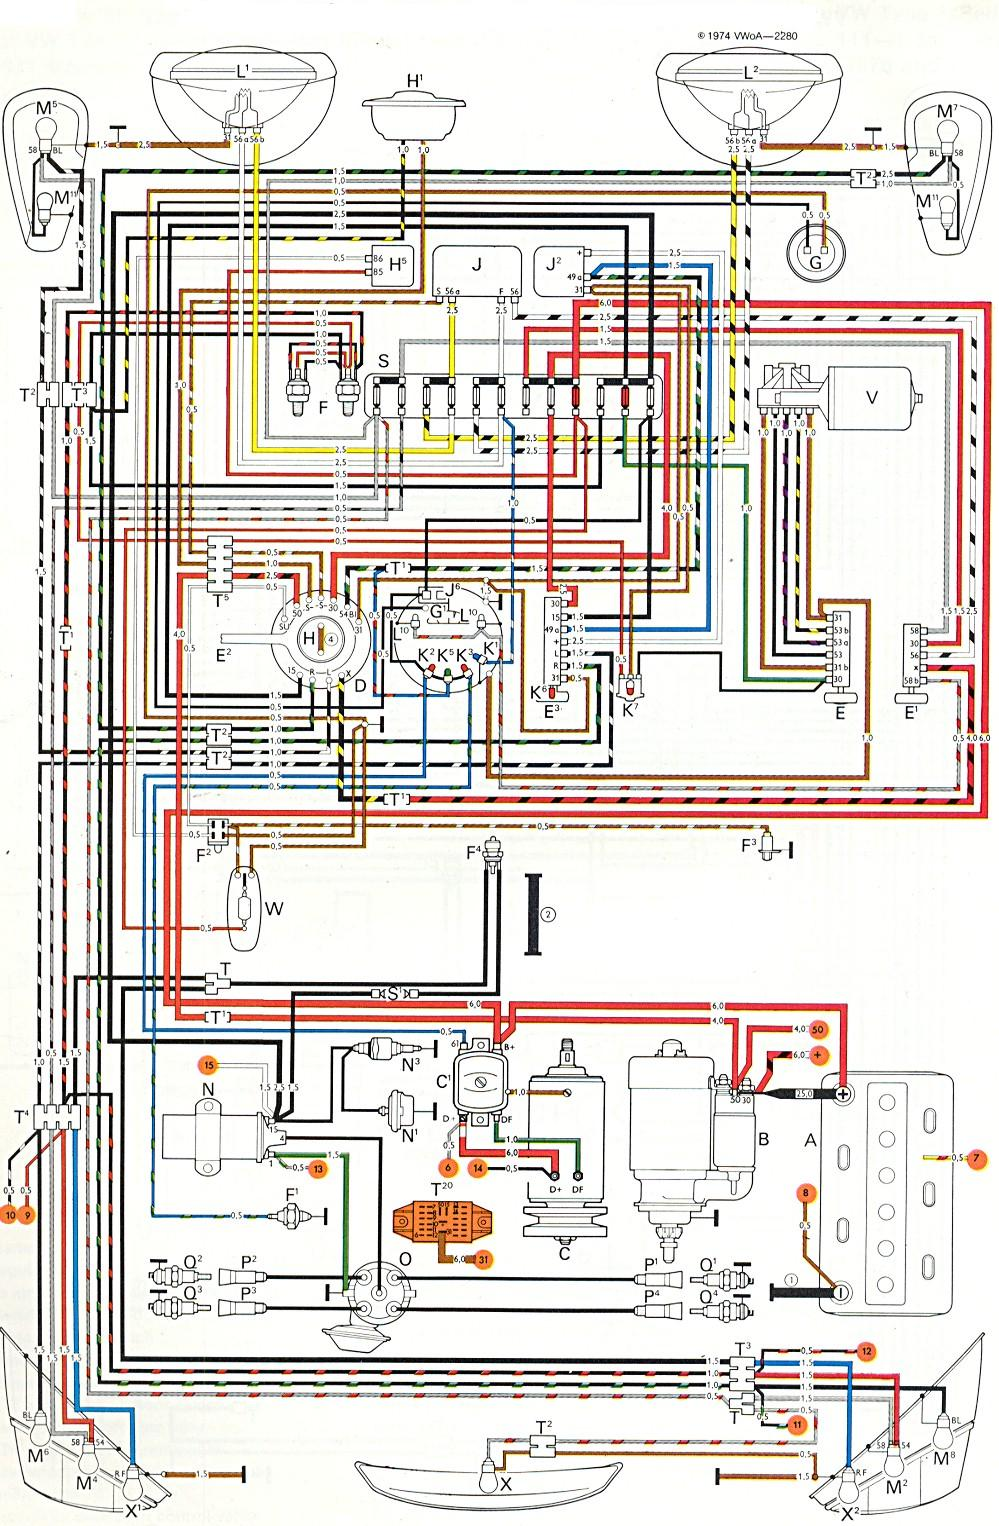 1971 vw bug wiring harness - wiring diagrams learn-site-a -  learn-site-a.alcuoredeldiabete.it  al cuore del diabete